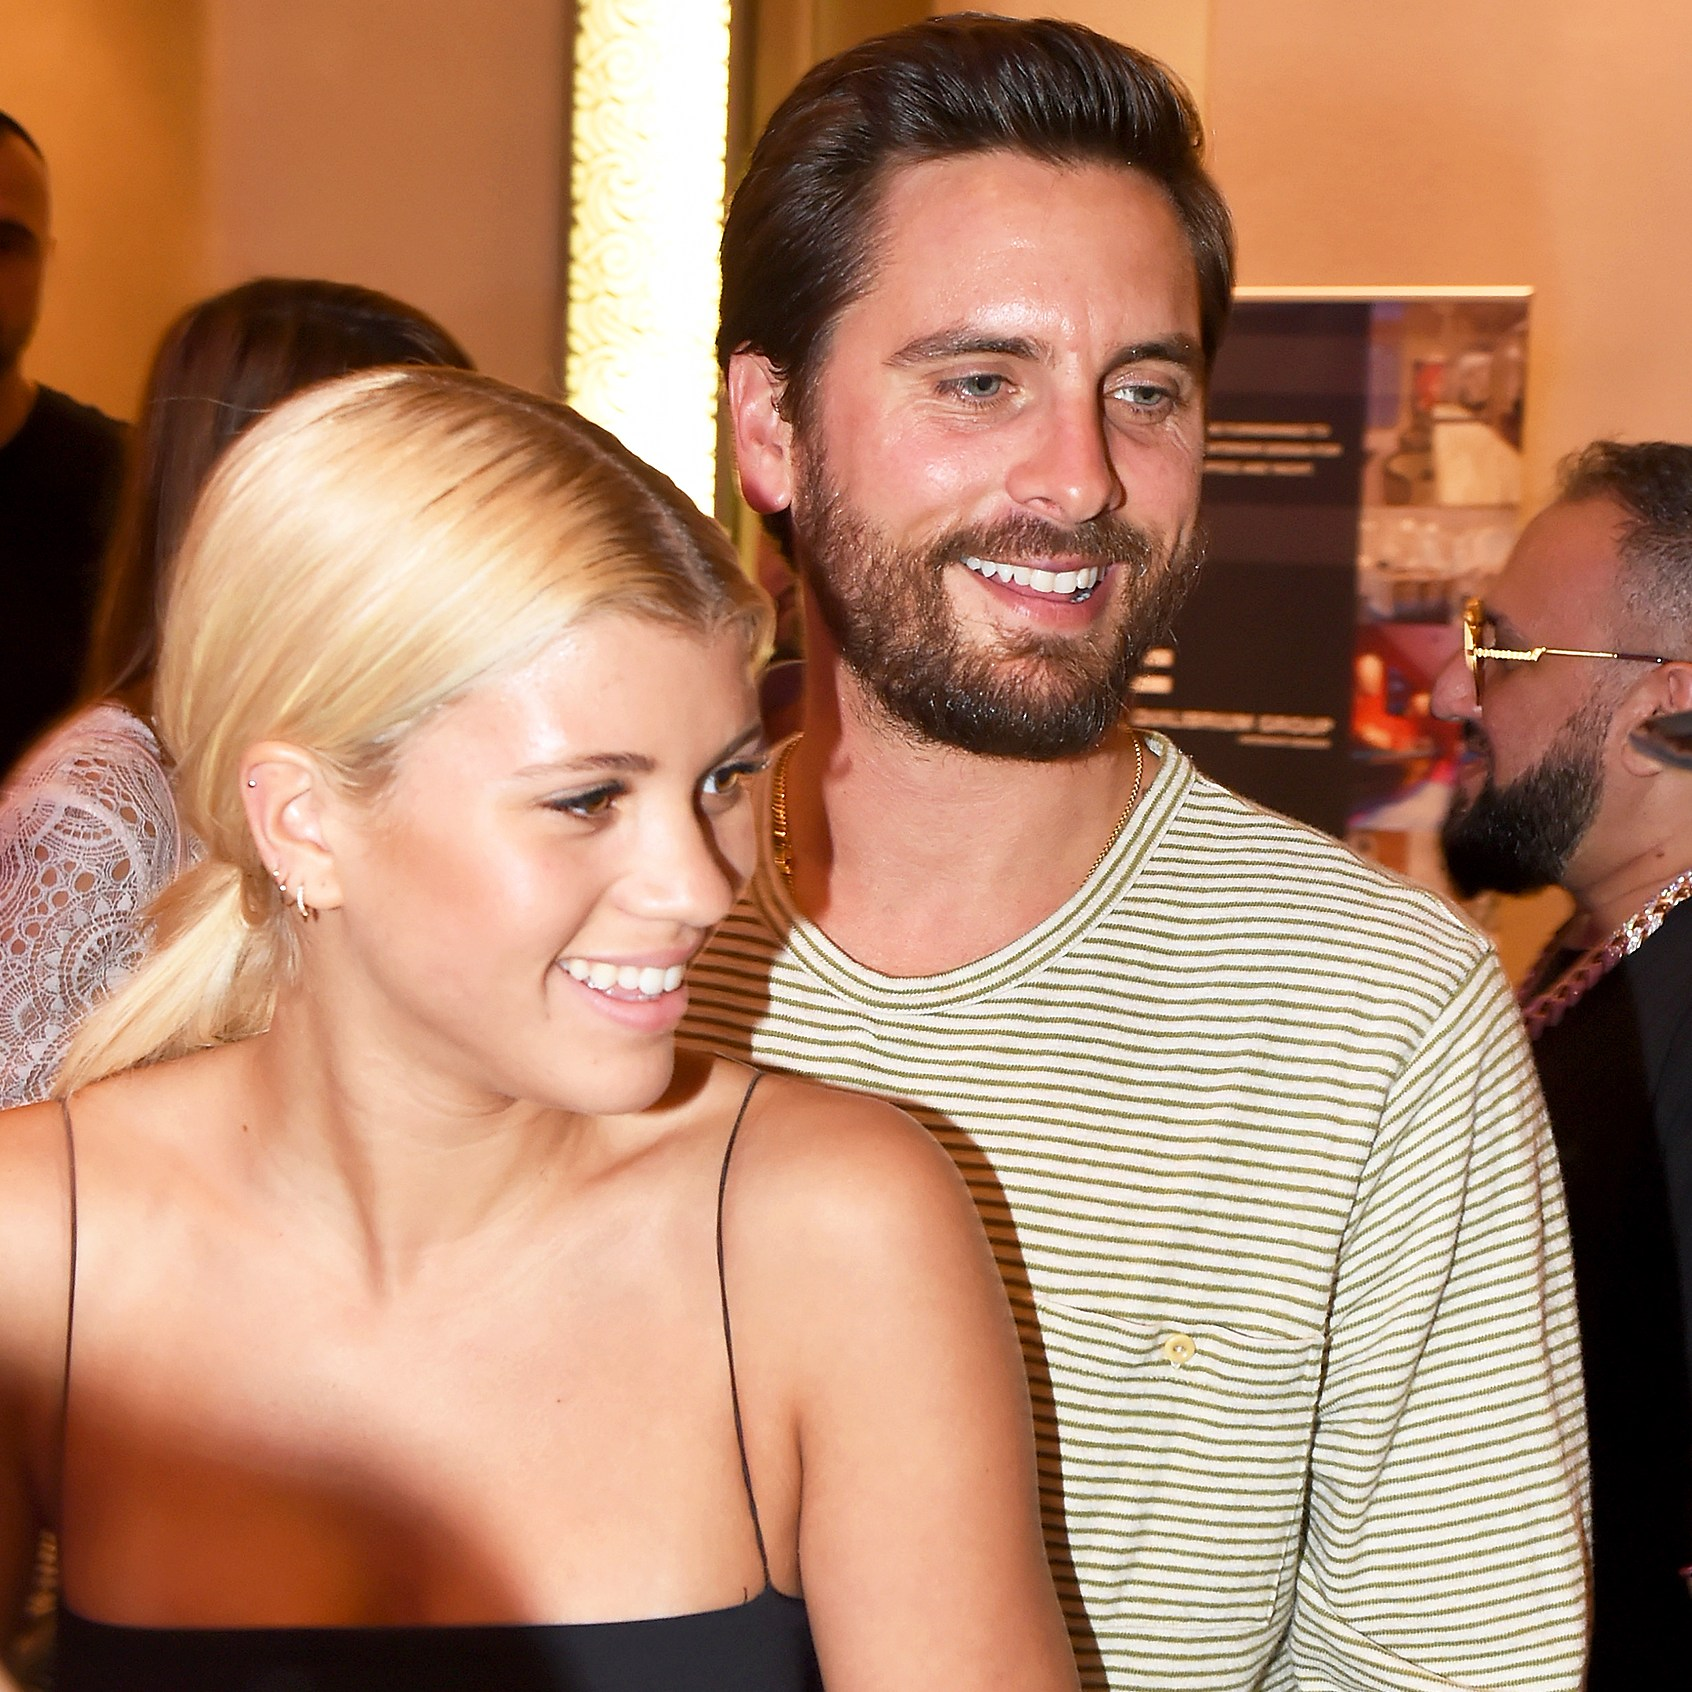 Sofia Richie and Scott Disick attend Haute Living's VIP Pop-Up opening of Alec Monopoly from Art Life and David Yarrow from Medal's Gallery on December 7, 2017 in Miami Beach, Florida.